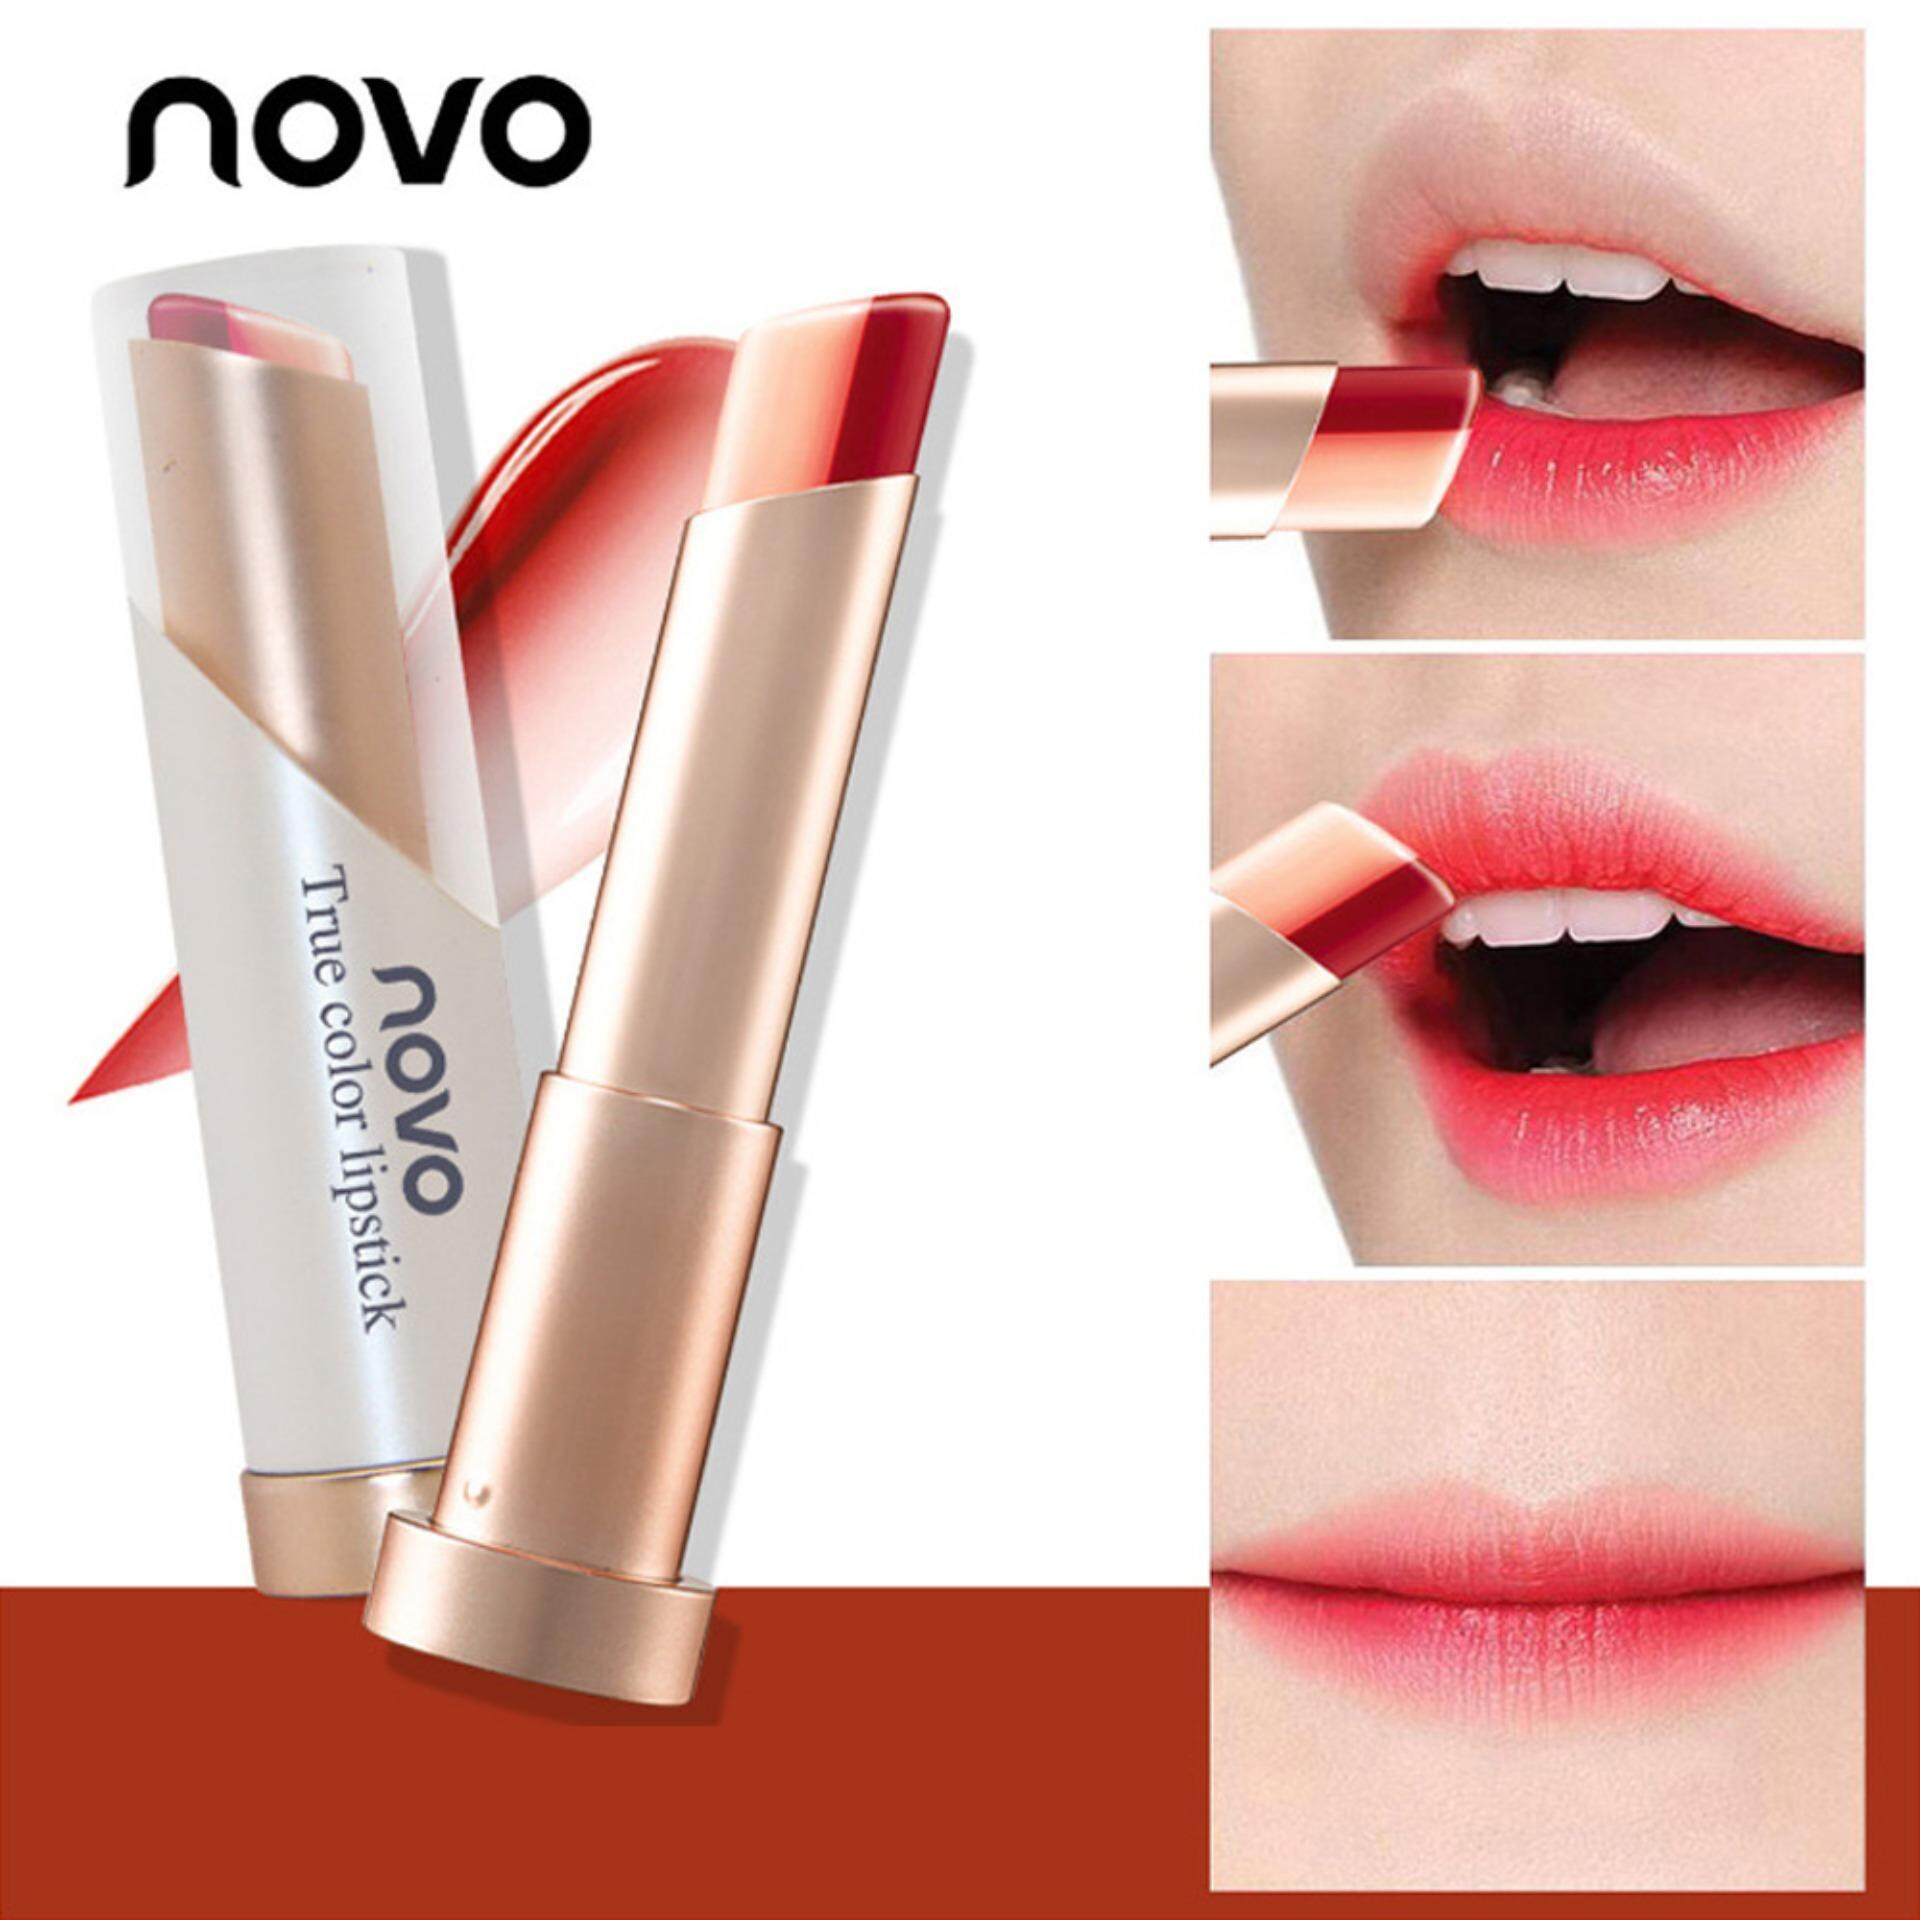 Best Lipsticks For The Prices In Malaysia Lip Glos Nyx Matte Mee  12pcs Novo Natural Health Honey Nourishing Moisturizing Double Color Korean Style Lipstick 38g 5160